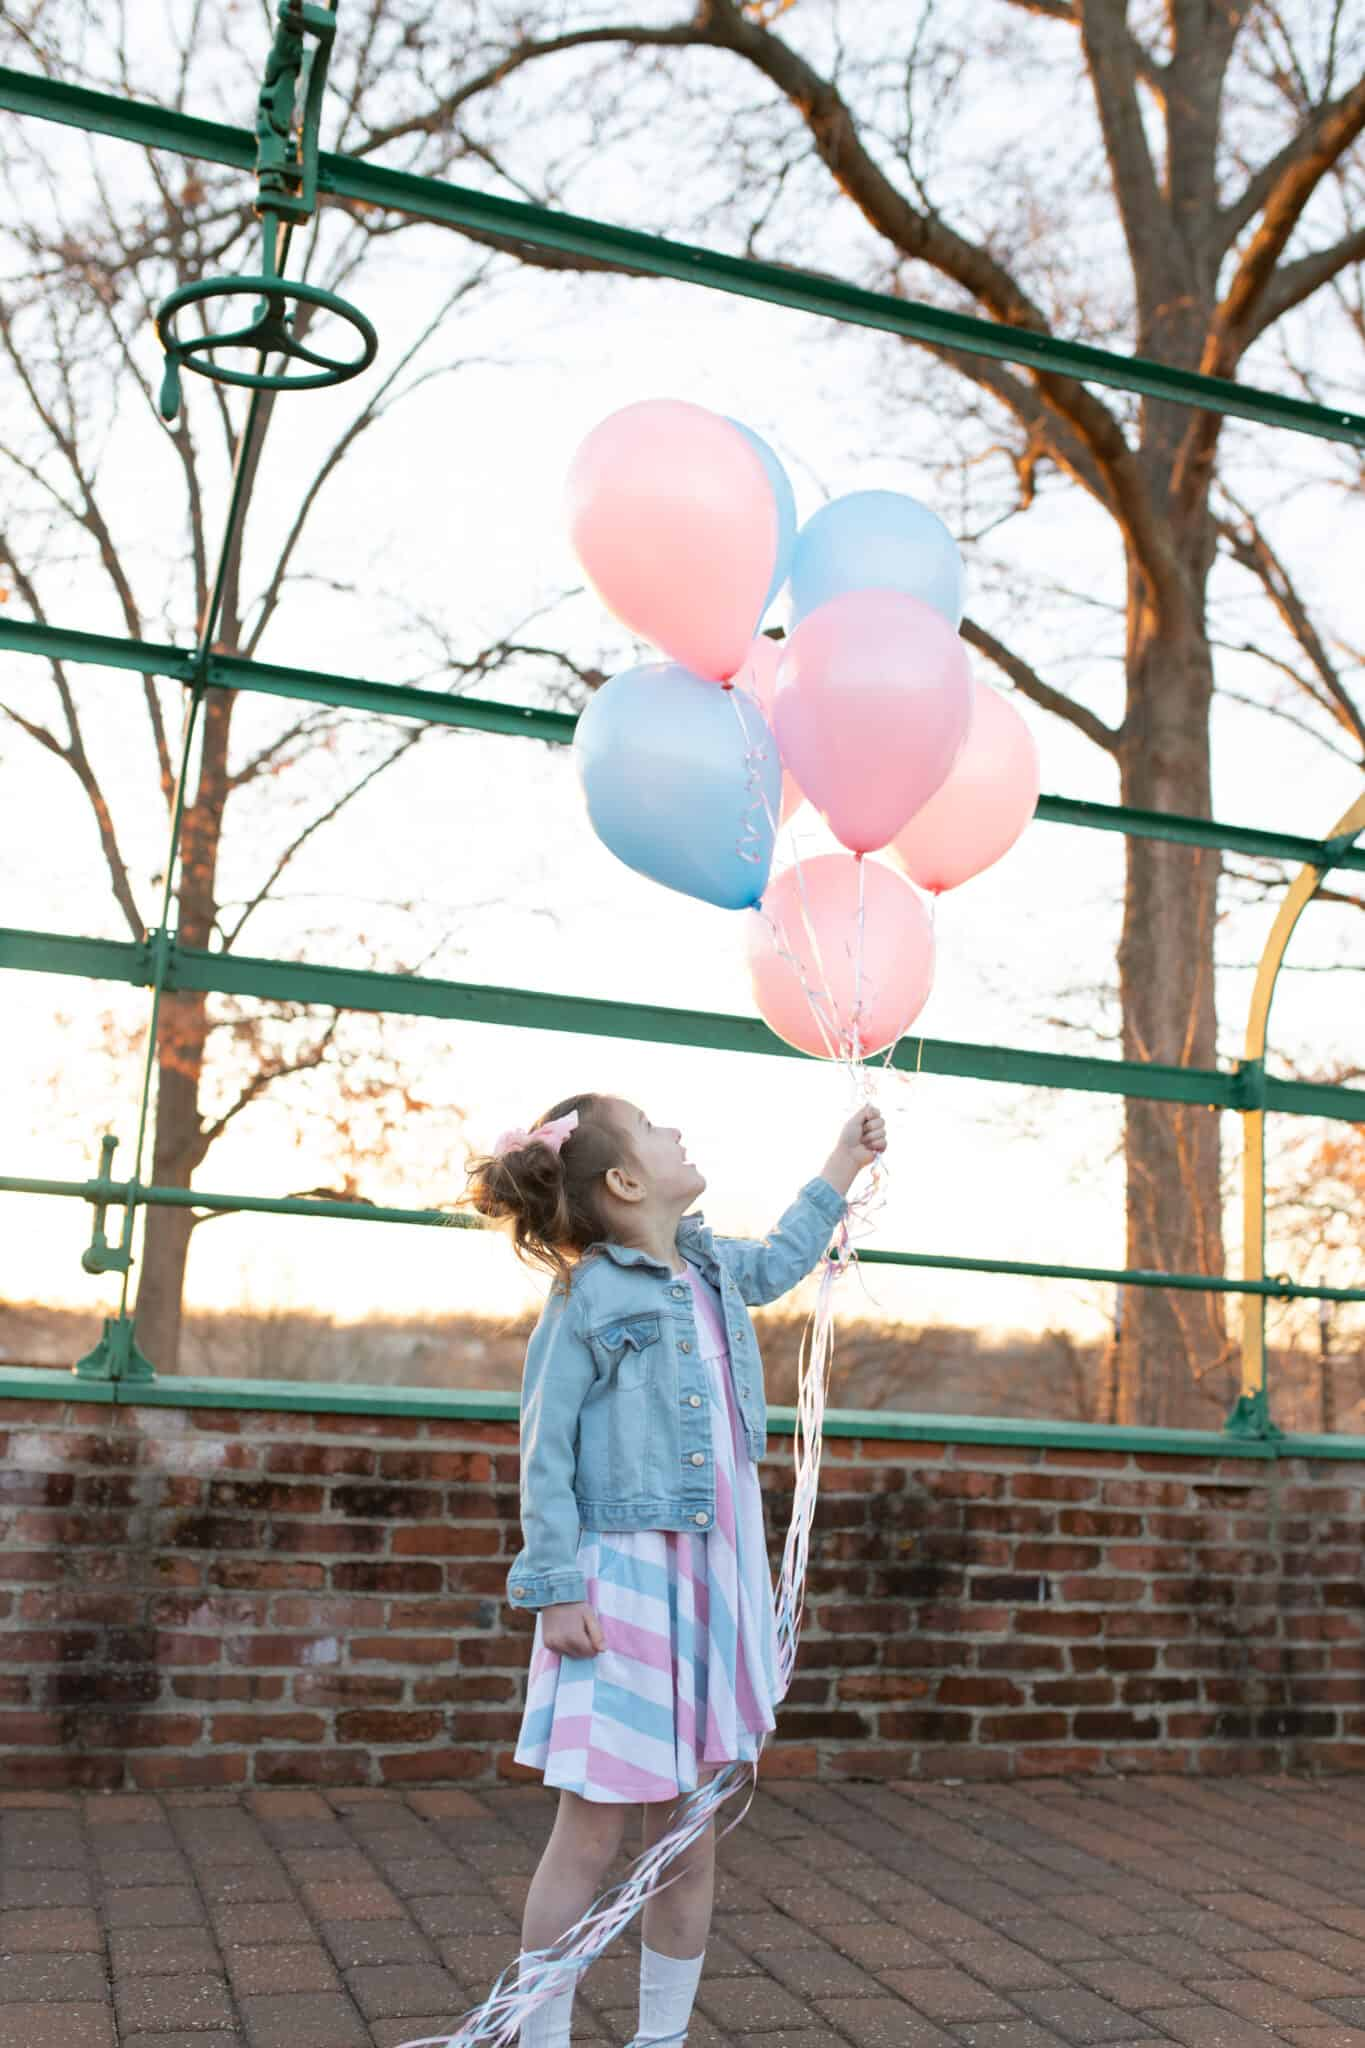 Toddler girl with pink and blue gender balloons